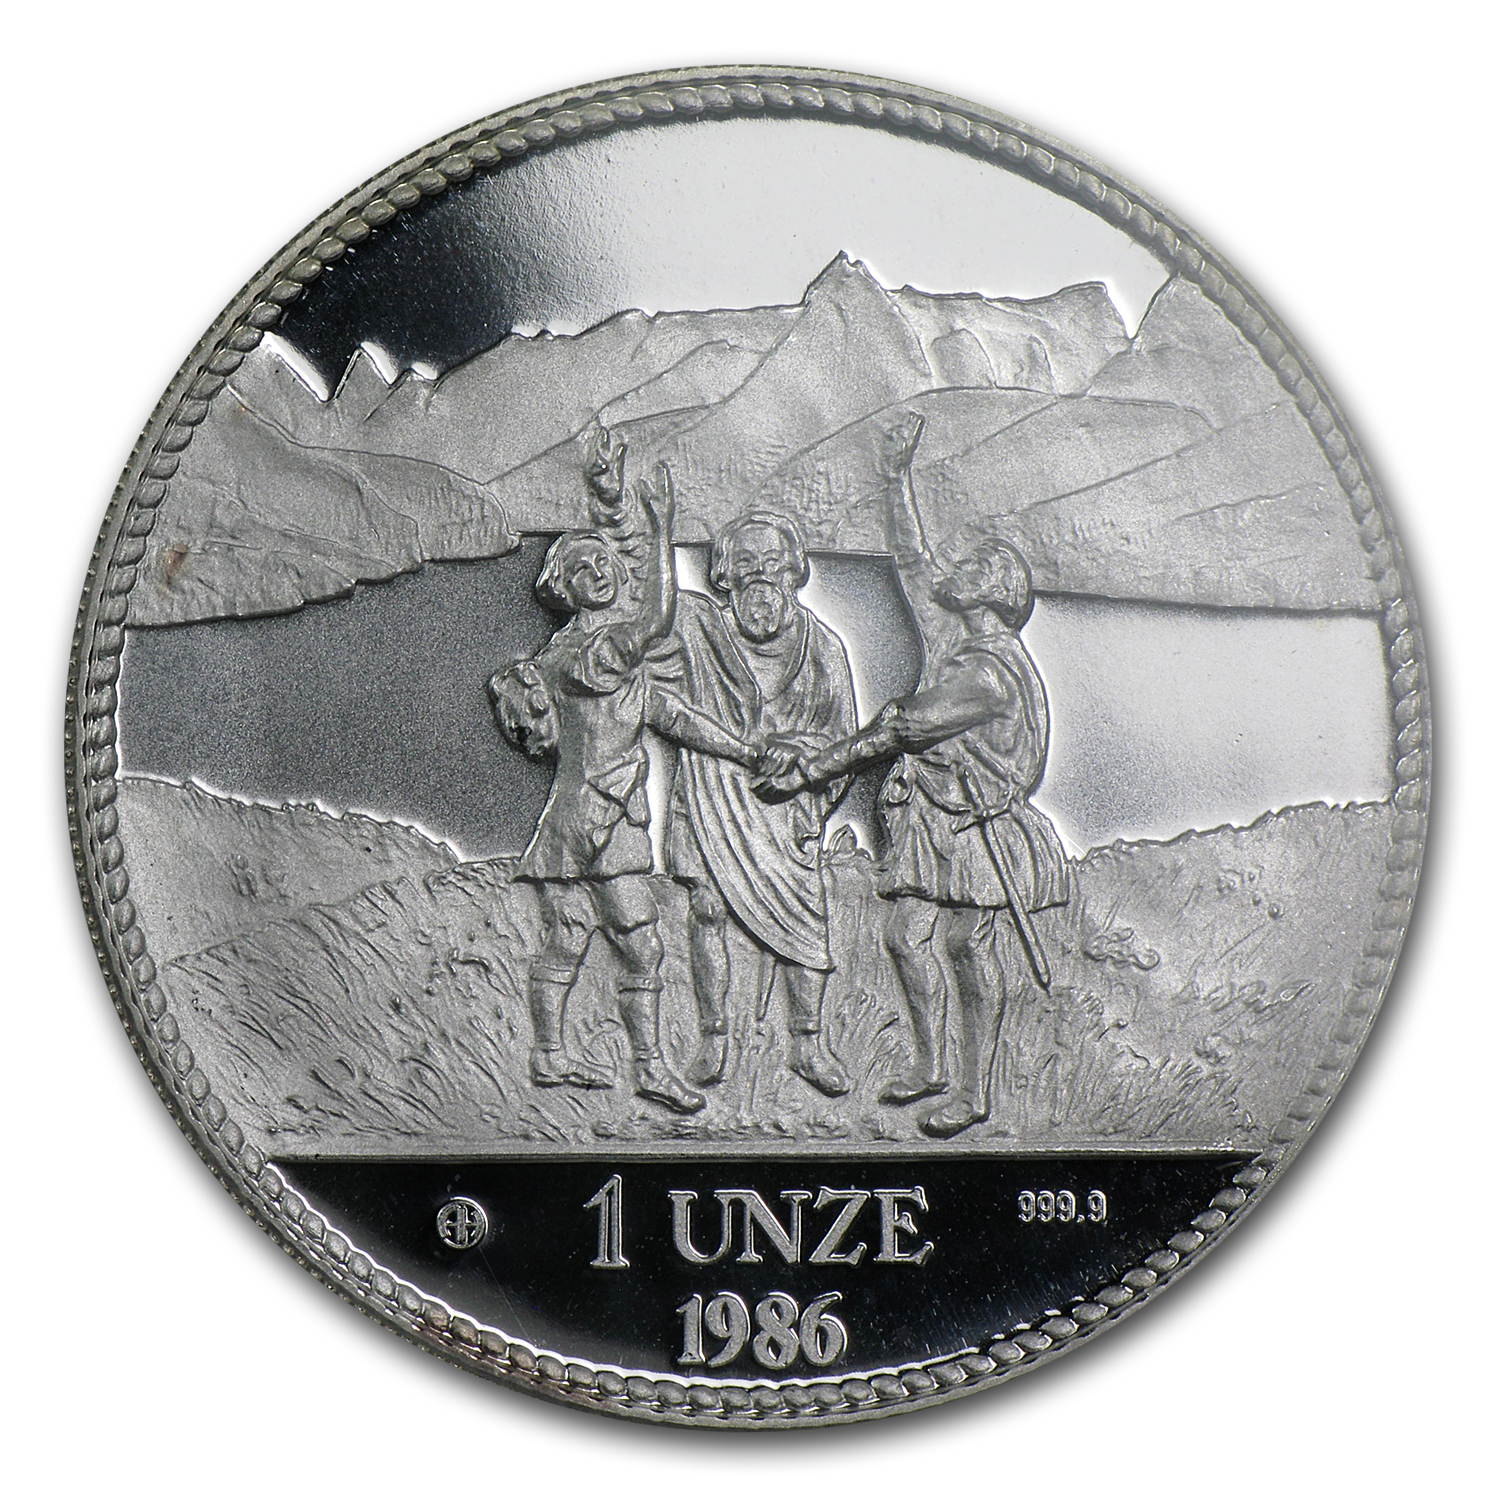 Switzerland 1986 1 oz Proof Silver Piedfort    PCGS PR-69 DC